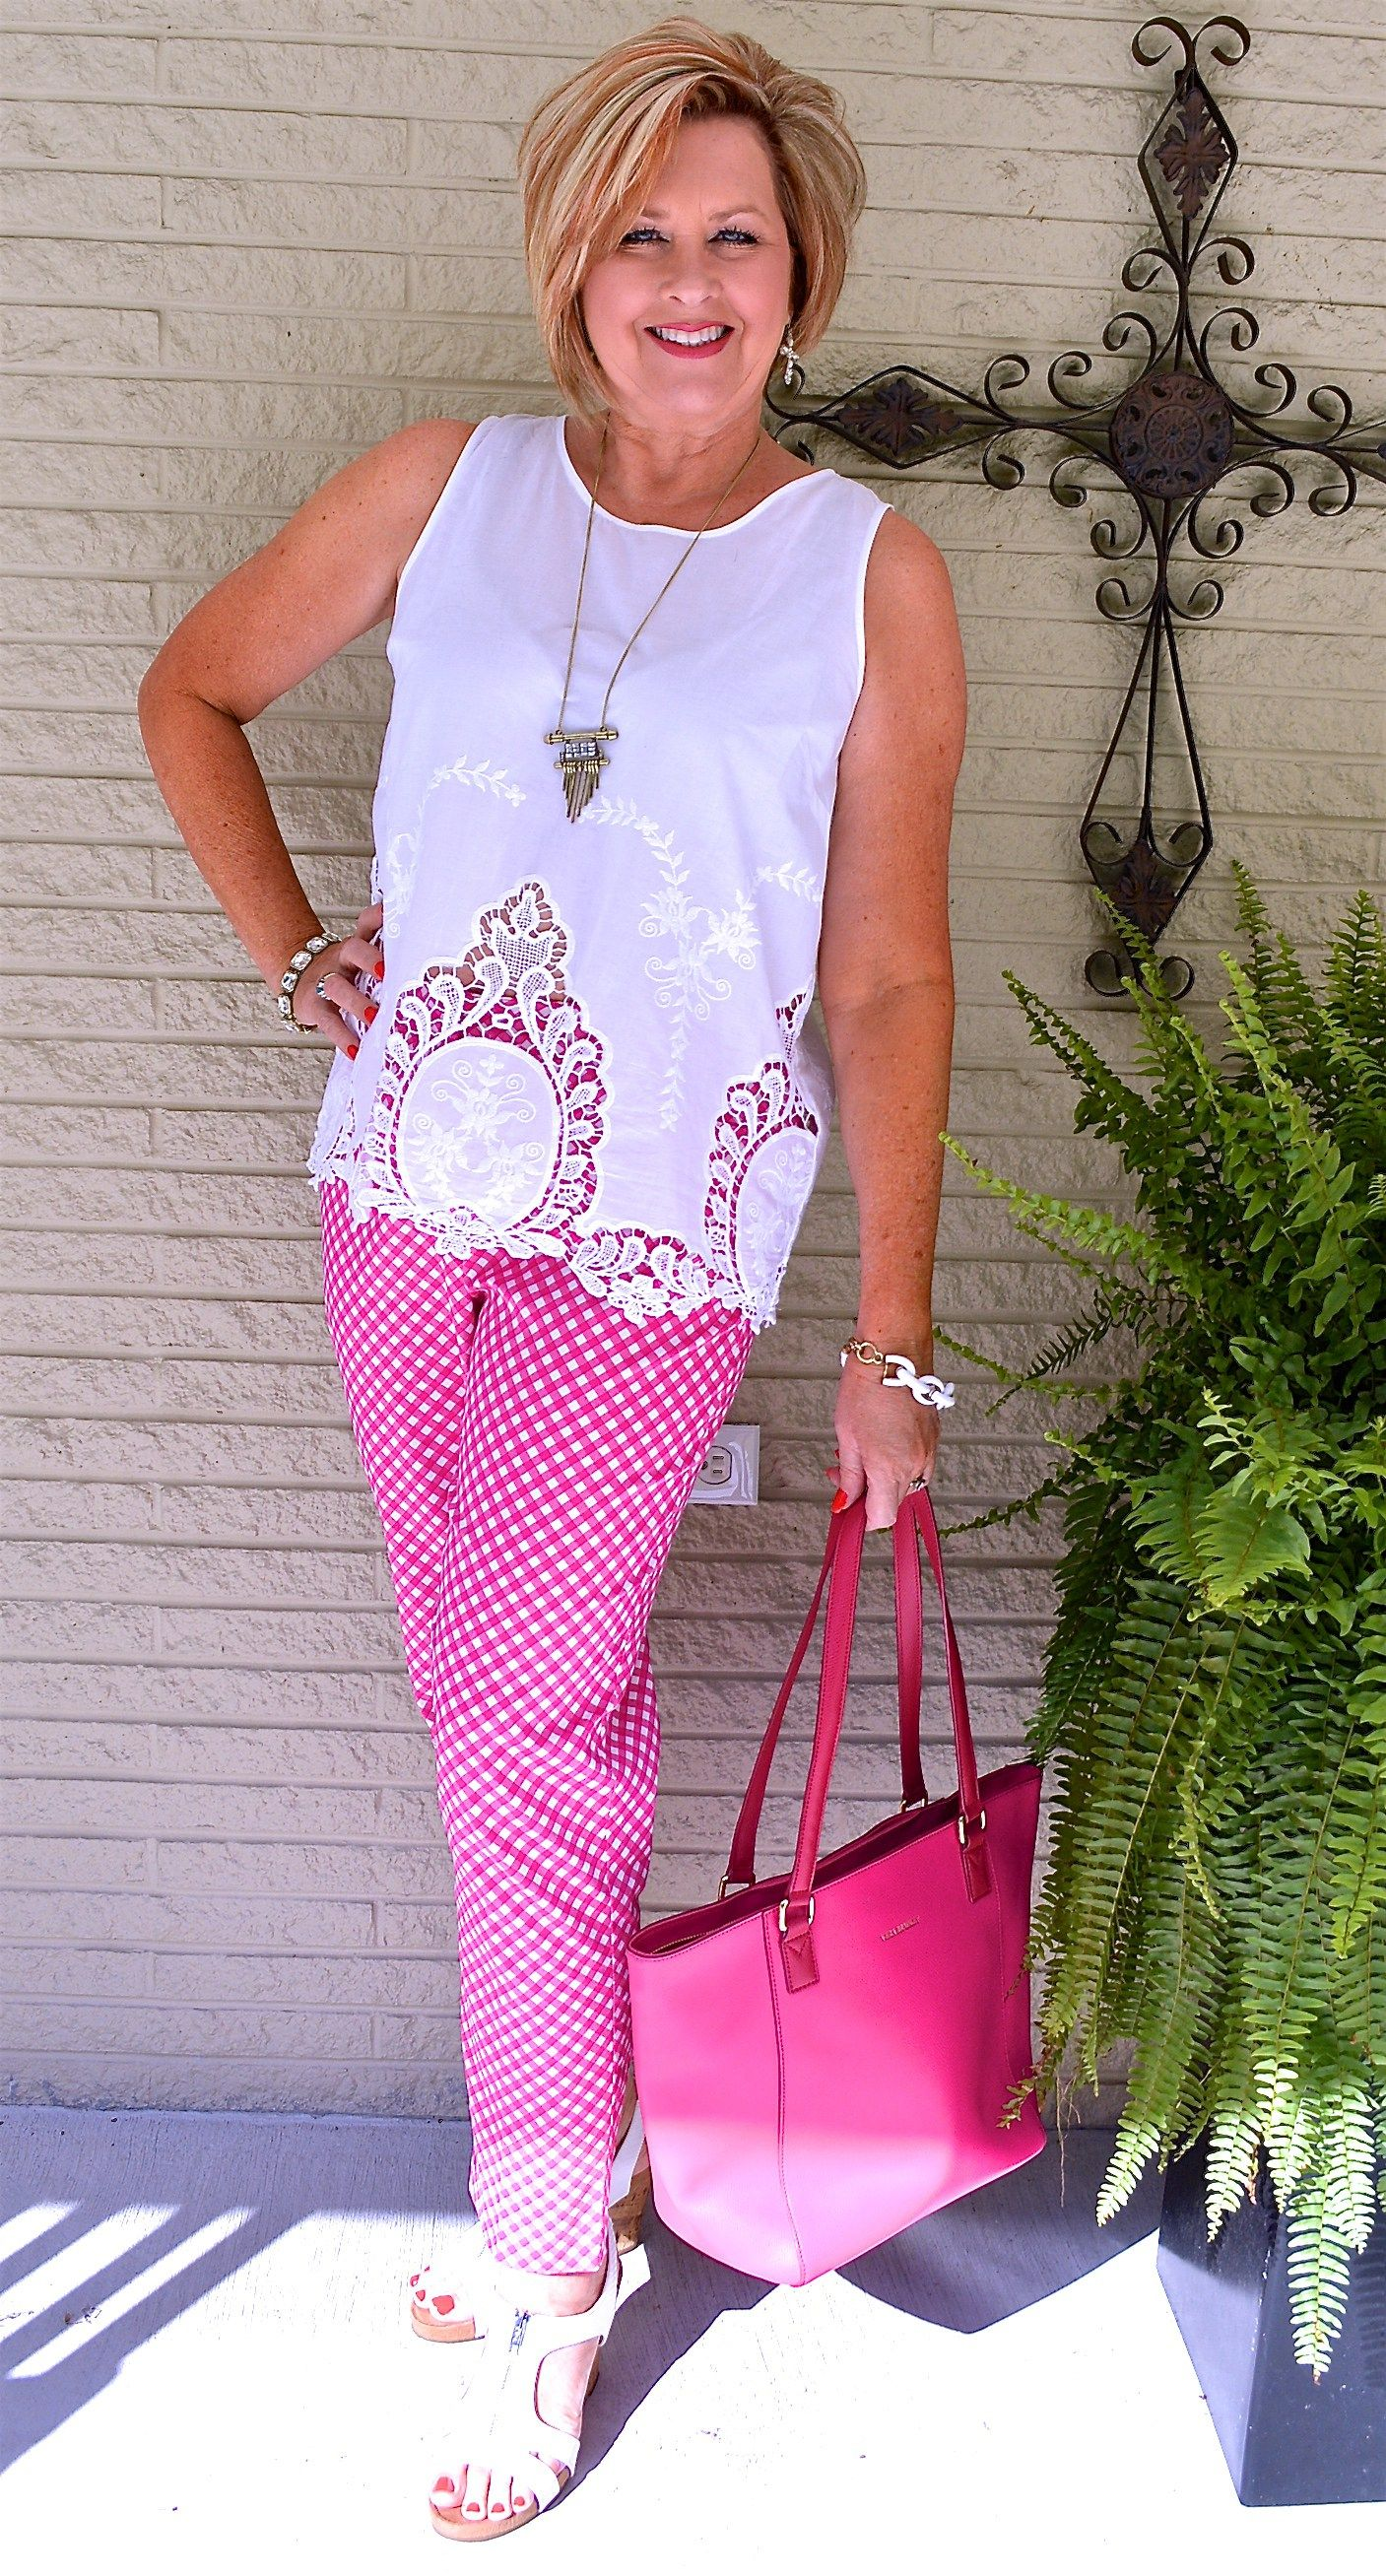 Picnic Pants And A Tablecloth Top 50 Is Not Old Clothes For Women Over 50 Over 50 Womens Fashion Fashion [ 2615 x 1407 Pixel ]